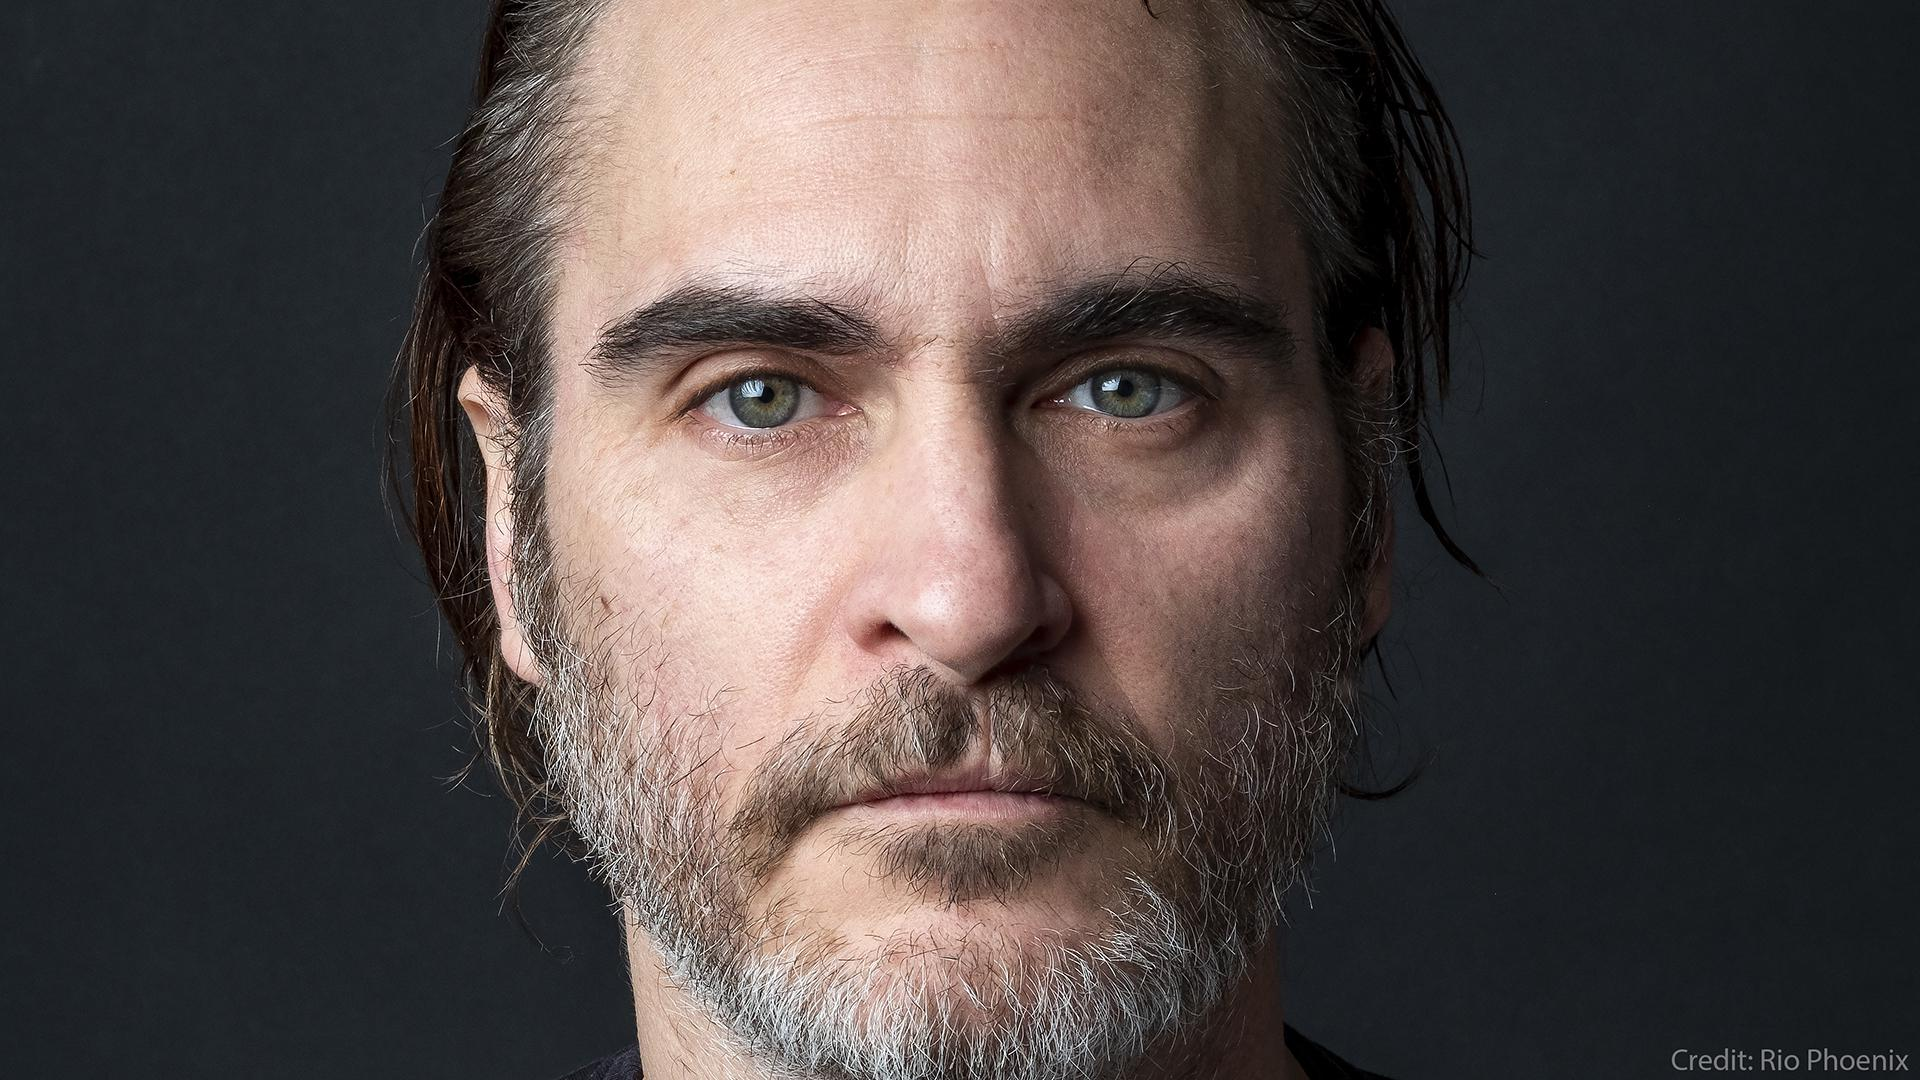 Joaquin Phoenix Exposes Hens Crammed Into Cages and Suffocated at Egg Supplier